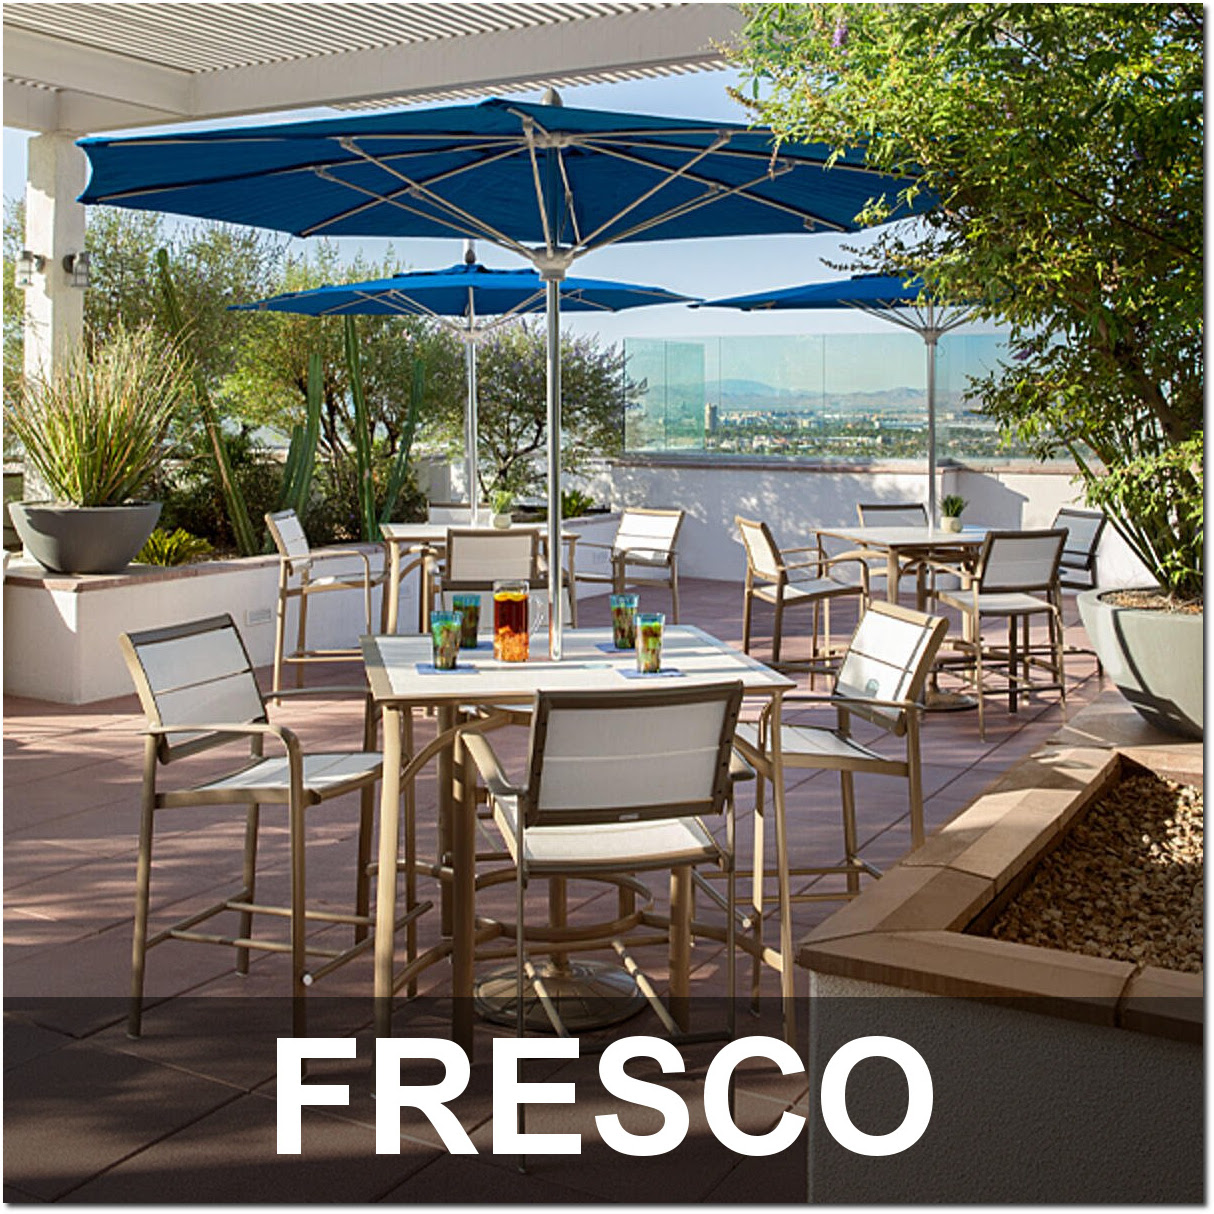 Fresco Collection Recycled Plastic Dining Sets